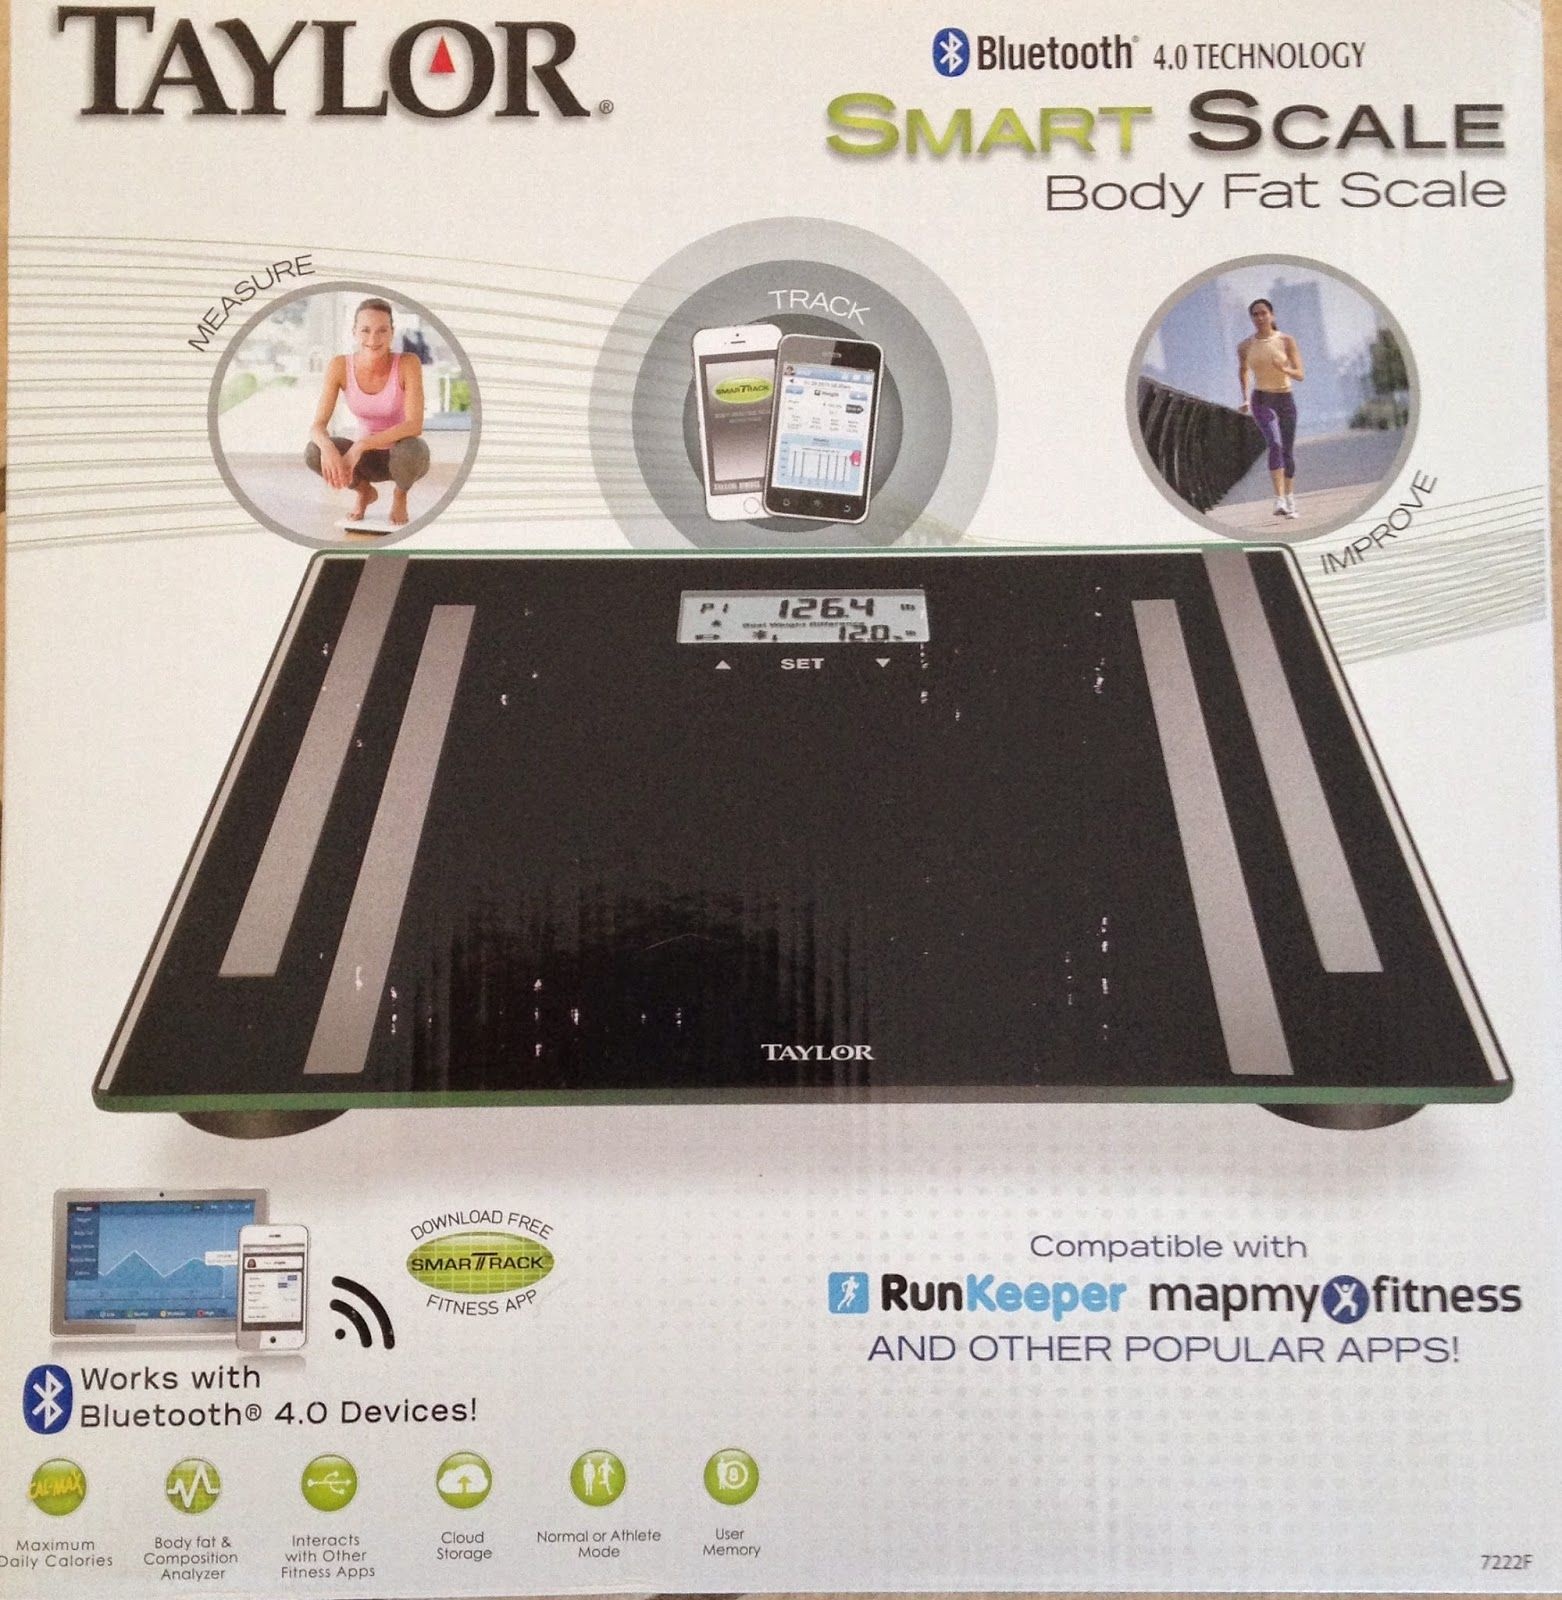 Pin On Taylor Bluetooth Body Fat Smart Scale